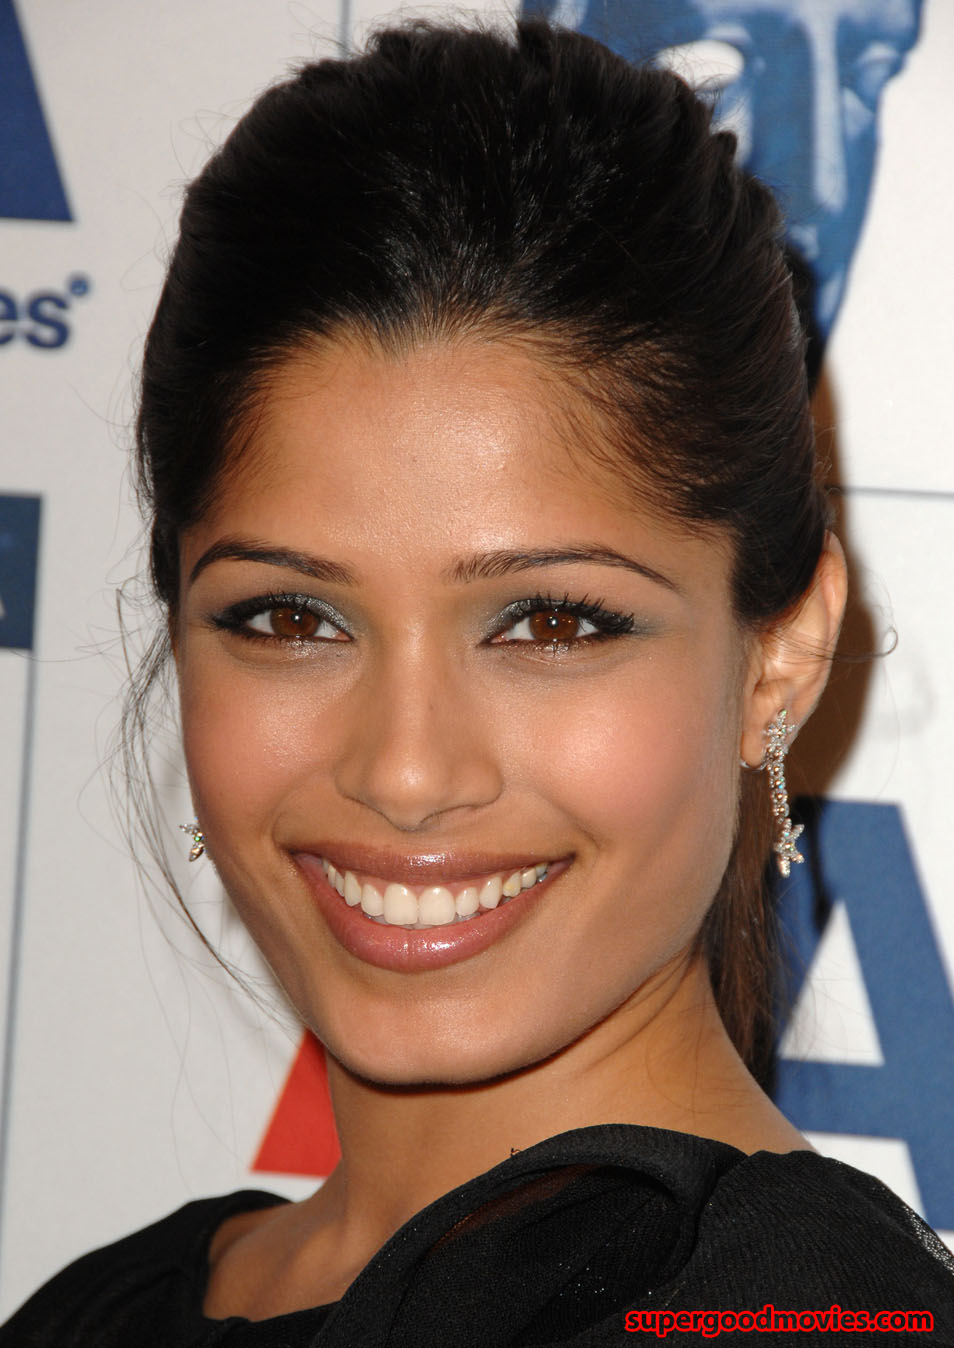 Freida Pinto hot Wallpapers | Celebrity Wallpapers Freida Pinto